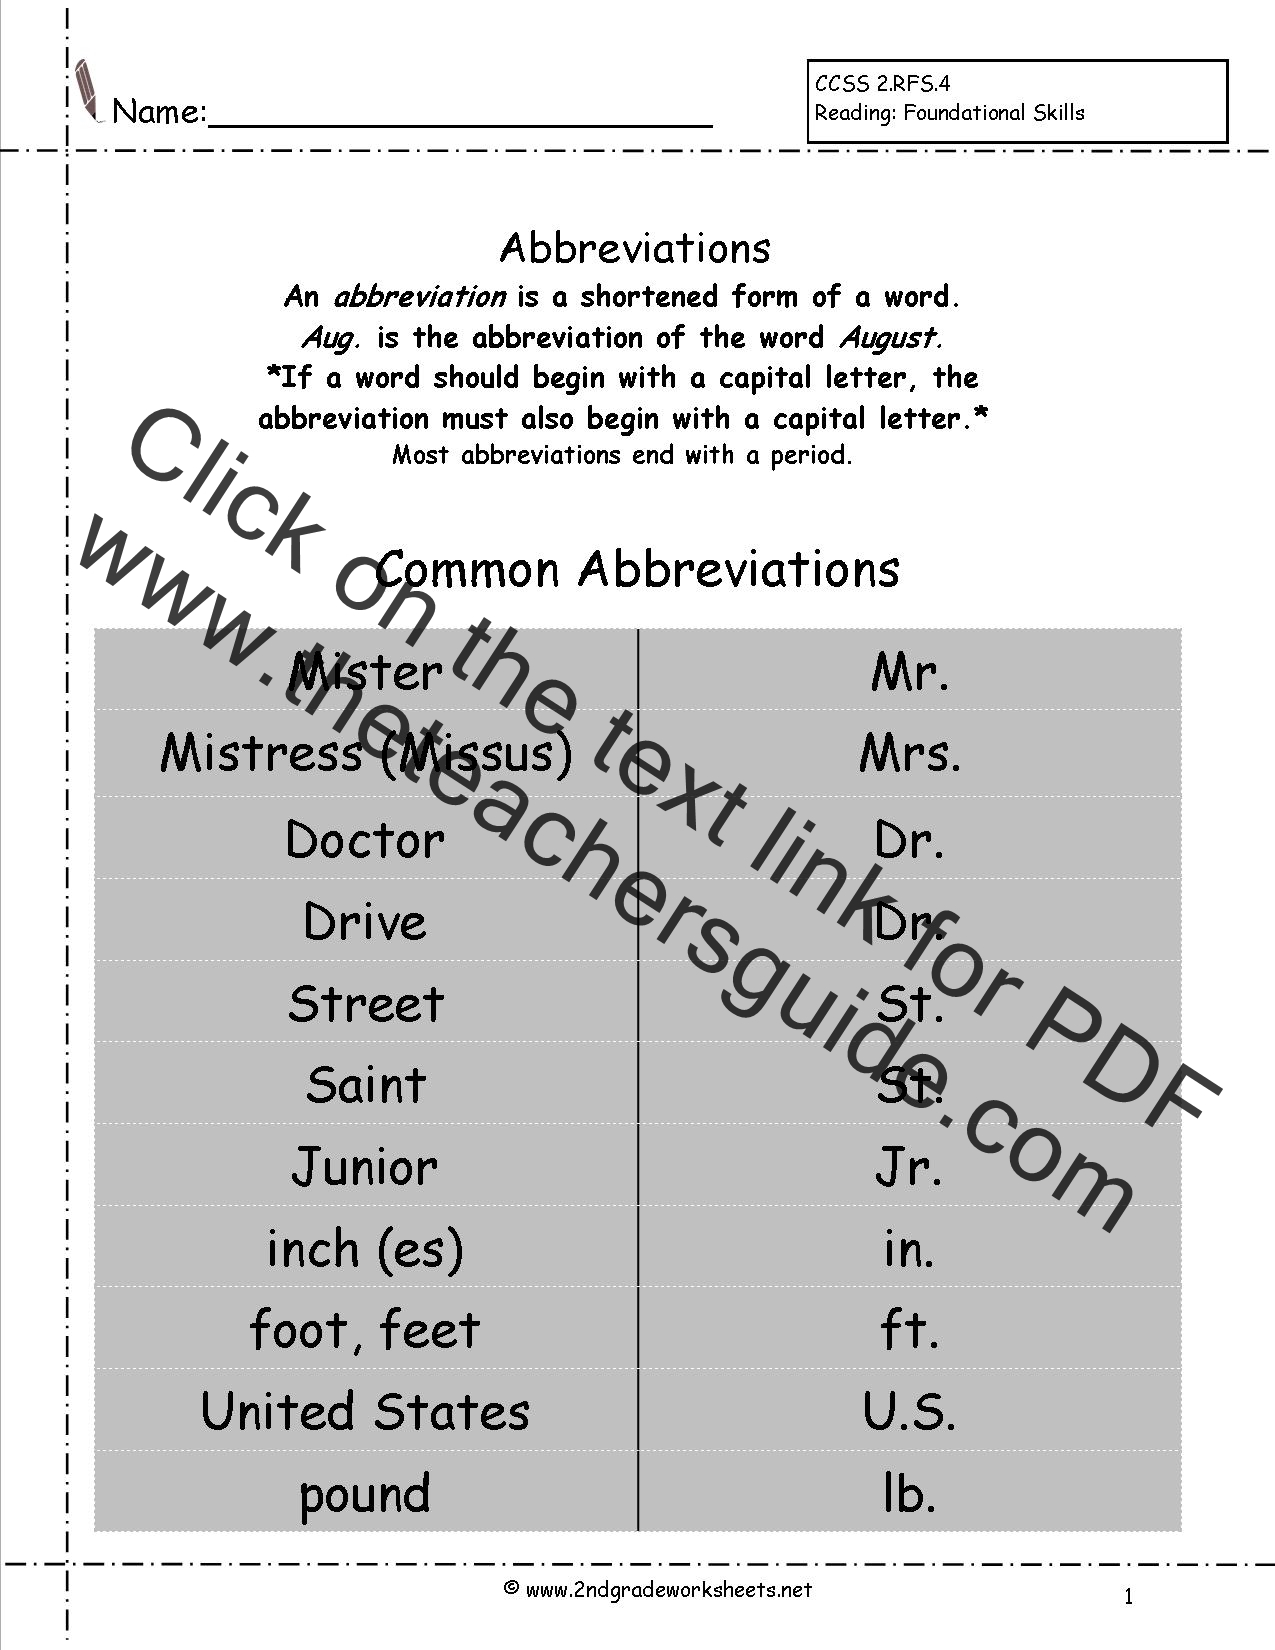 Worksheets Second Grade Grammar Worksheets free languagegrammar worksheets and printouts abbreviations worksheets